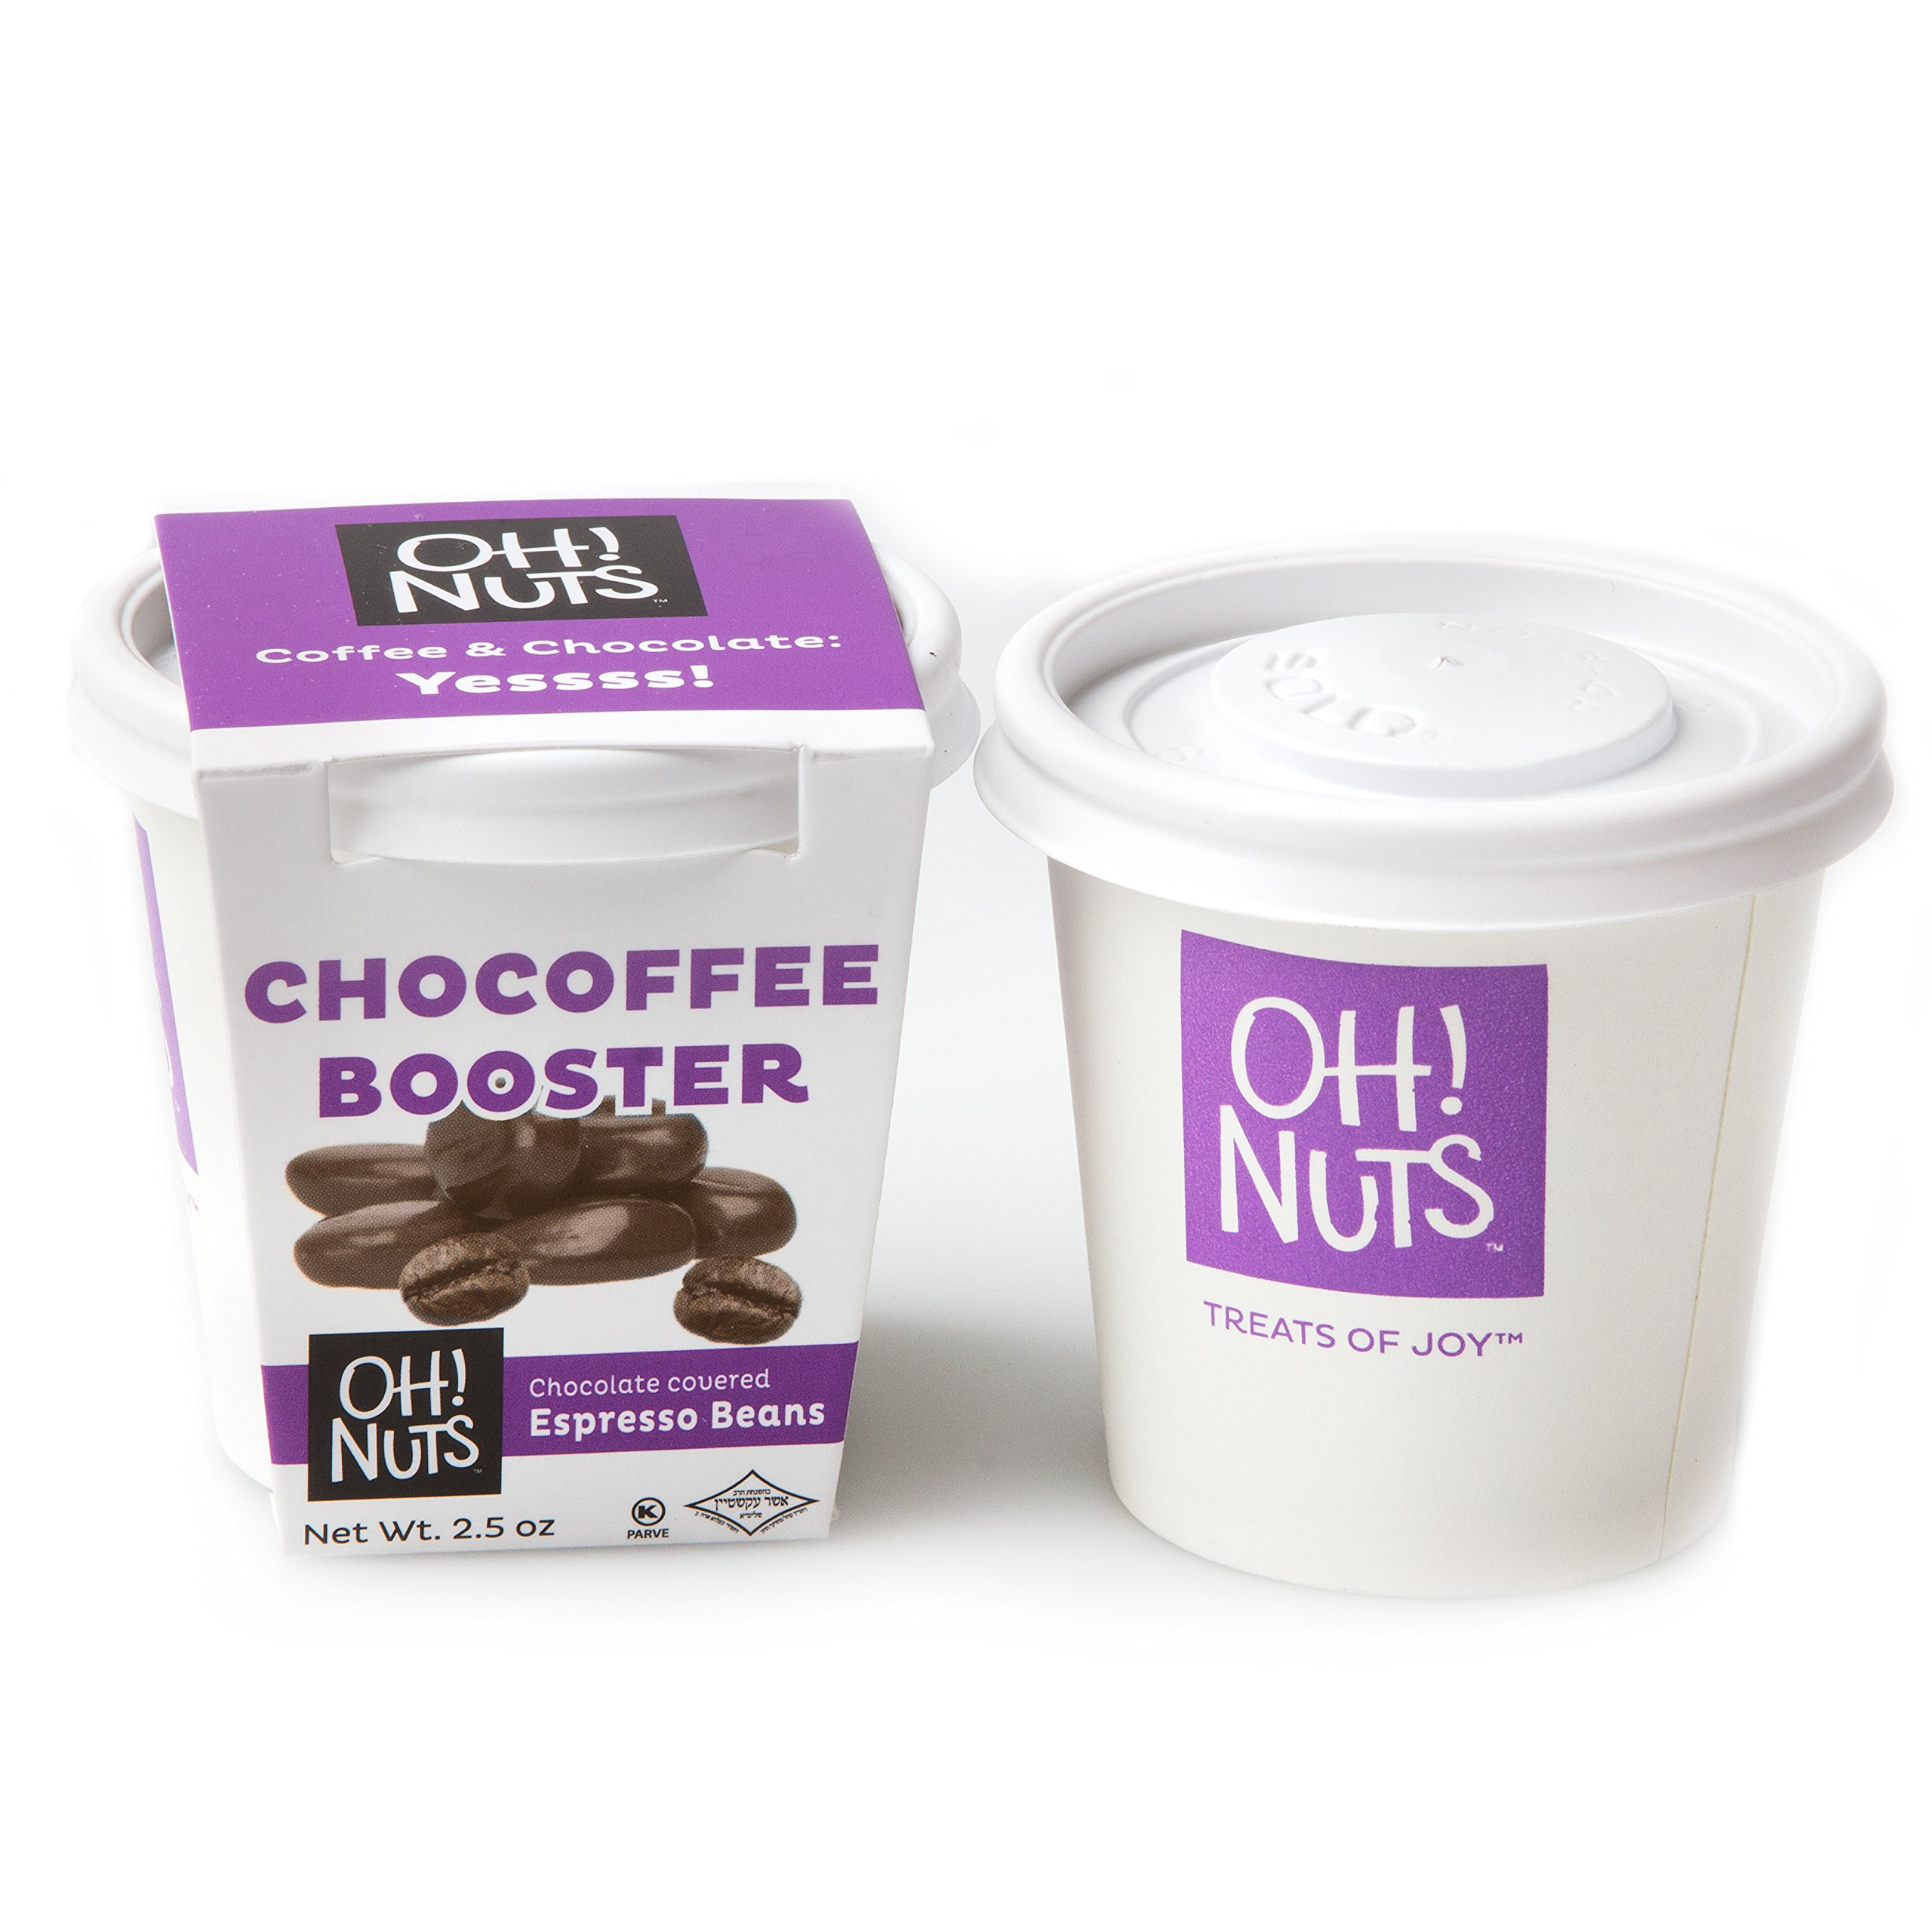 Chocolate Covered Espresso Beans, Chocofee Booster Coffee Gifts, Dark Chocolate Covered Roasted Coffee Beans, Great on the GO or as Gift Pack - Oh! Nuts